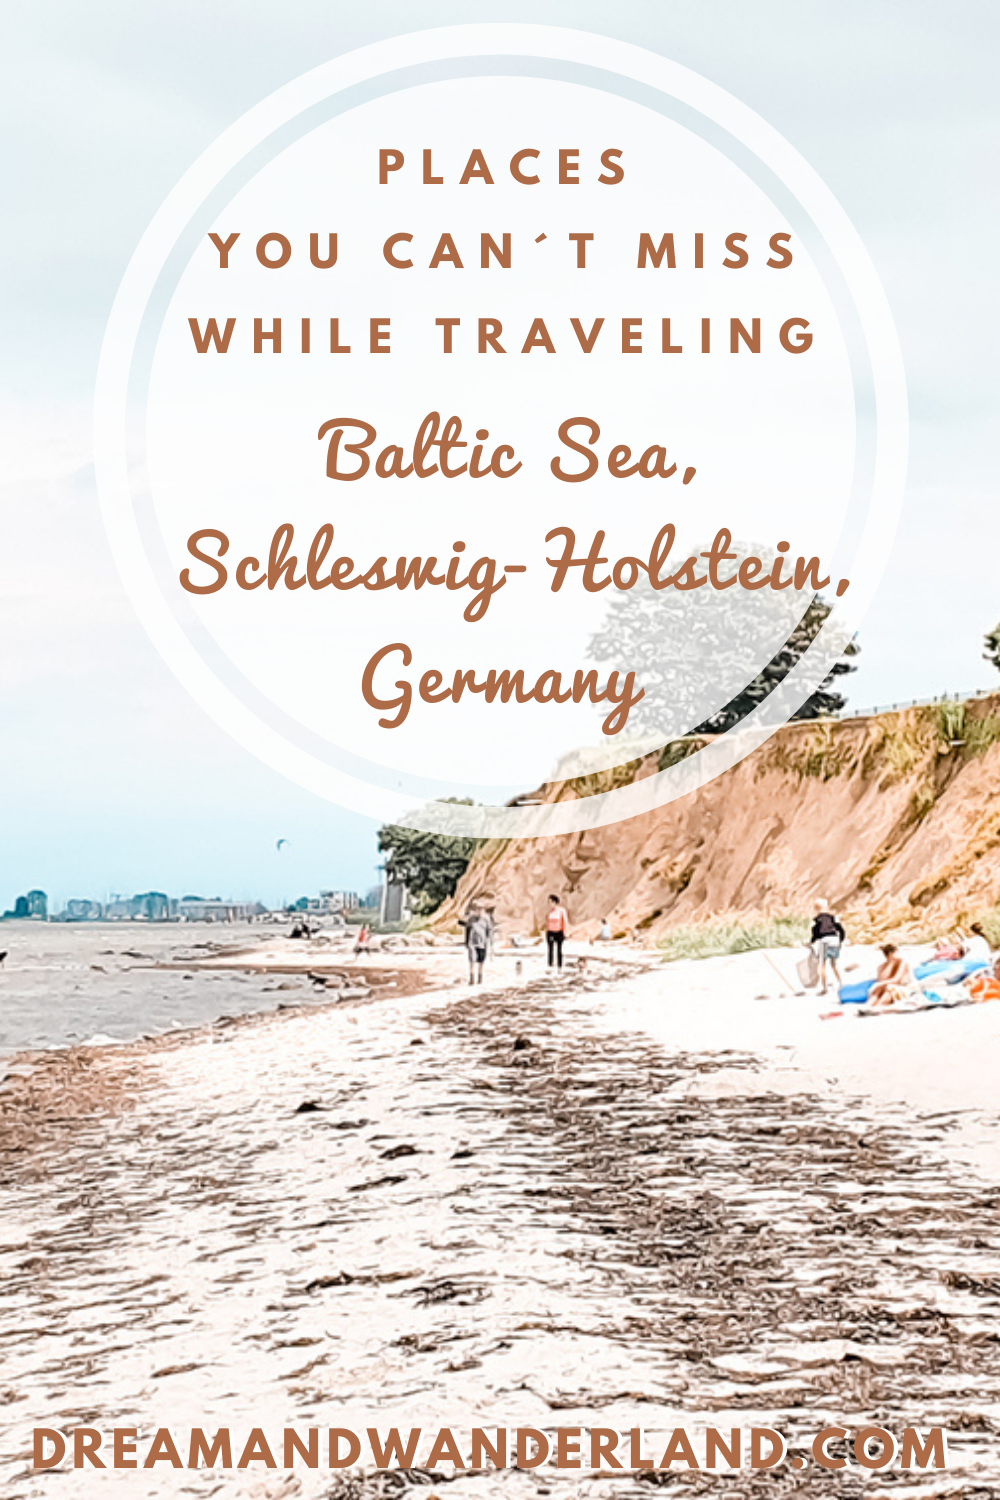 Travel Baltic Sea in Schleswig-Holstein, Germany, and find stunning places and awesome things to do! Have a blast on your German vacation getaway! #thingstodo #germany #holiday #roadtrip